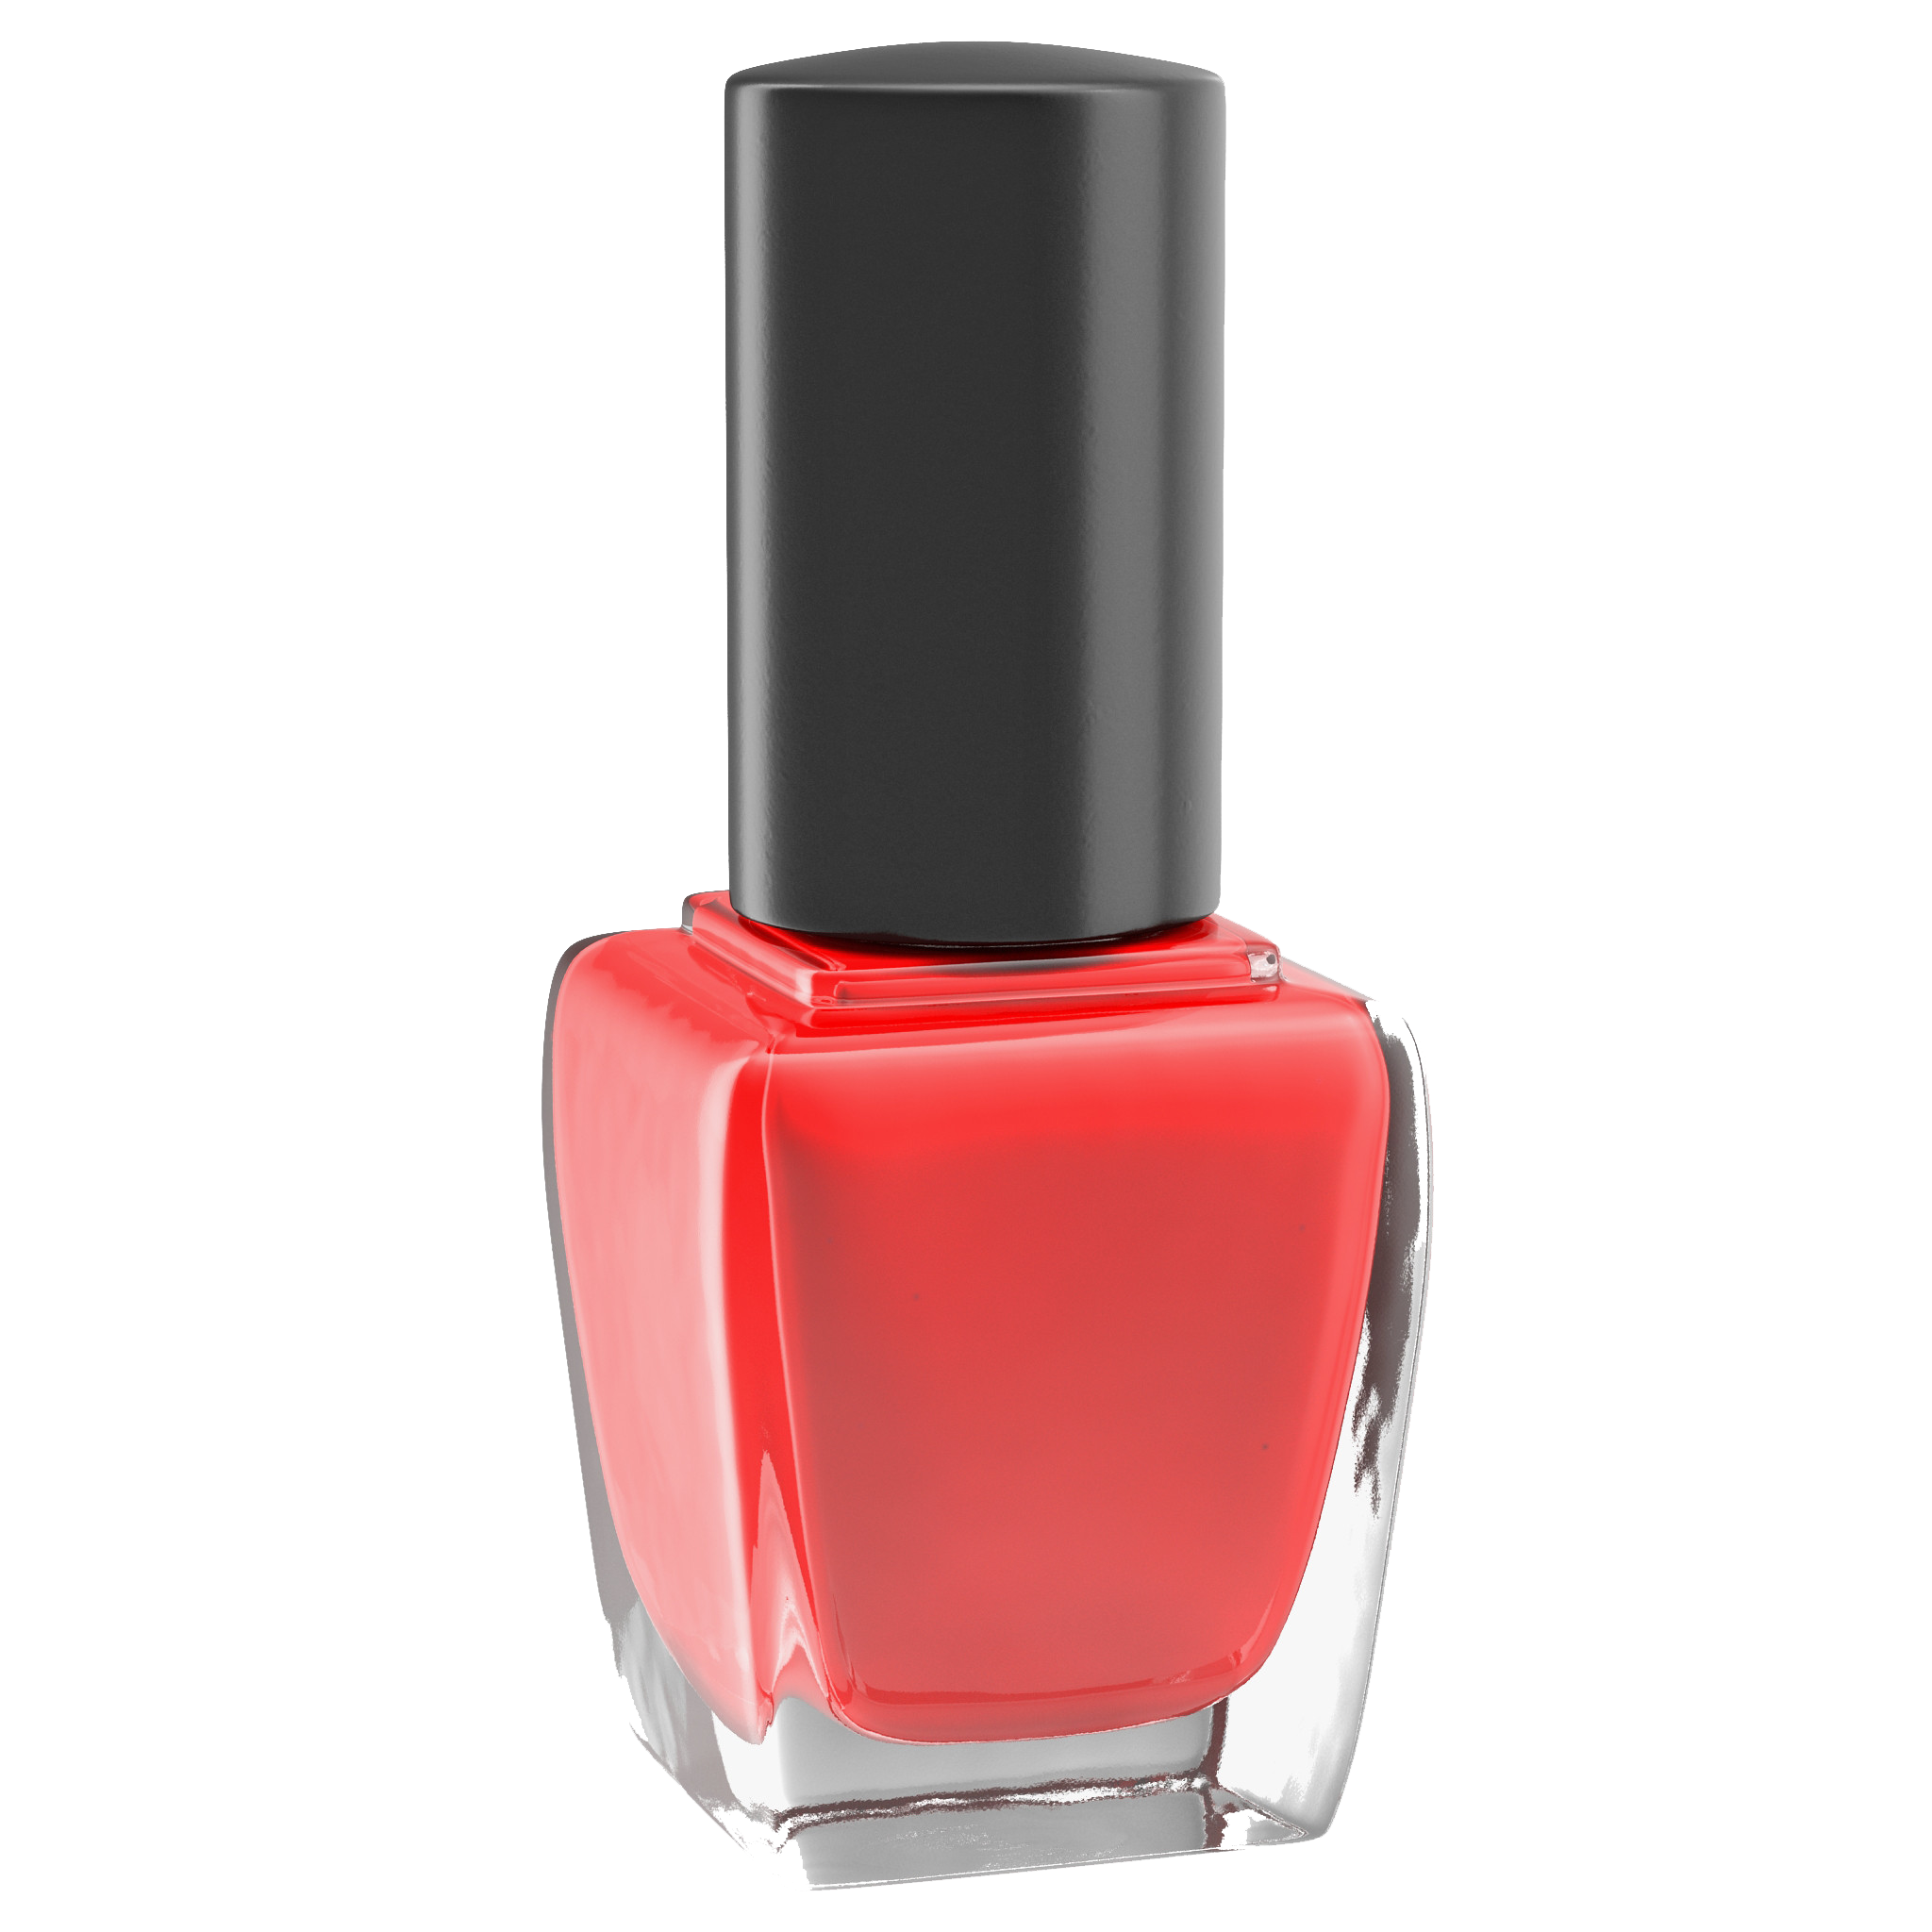 collection of clipart. Nail polish bottle png